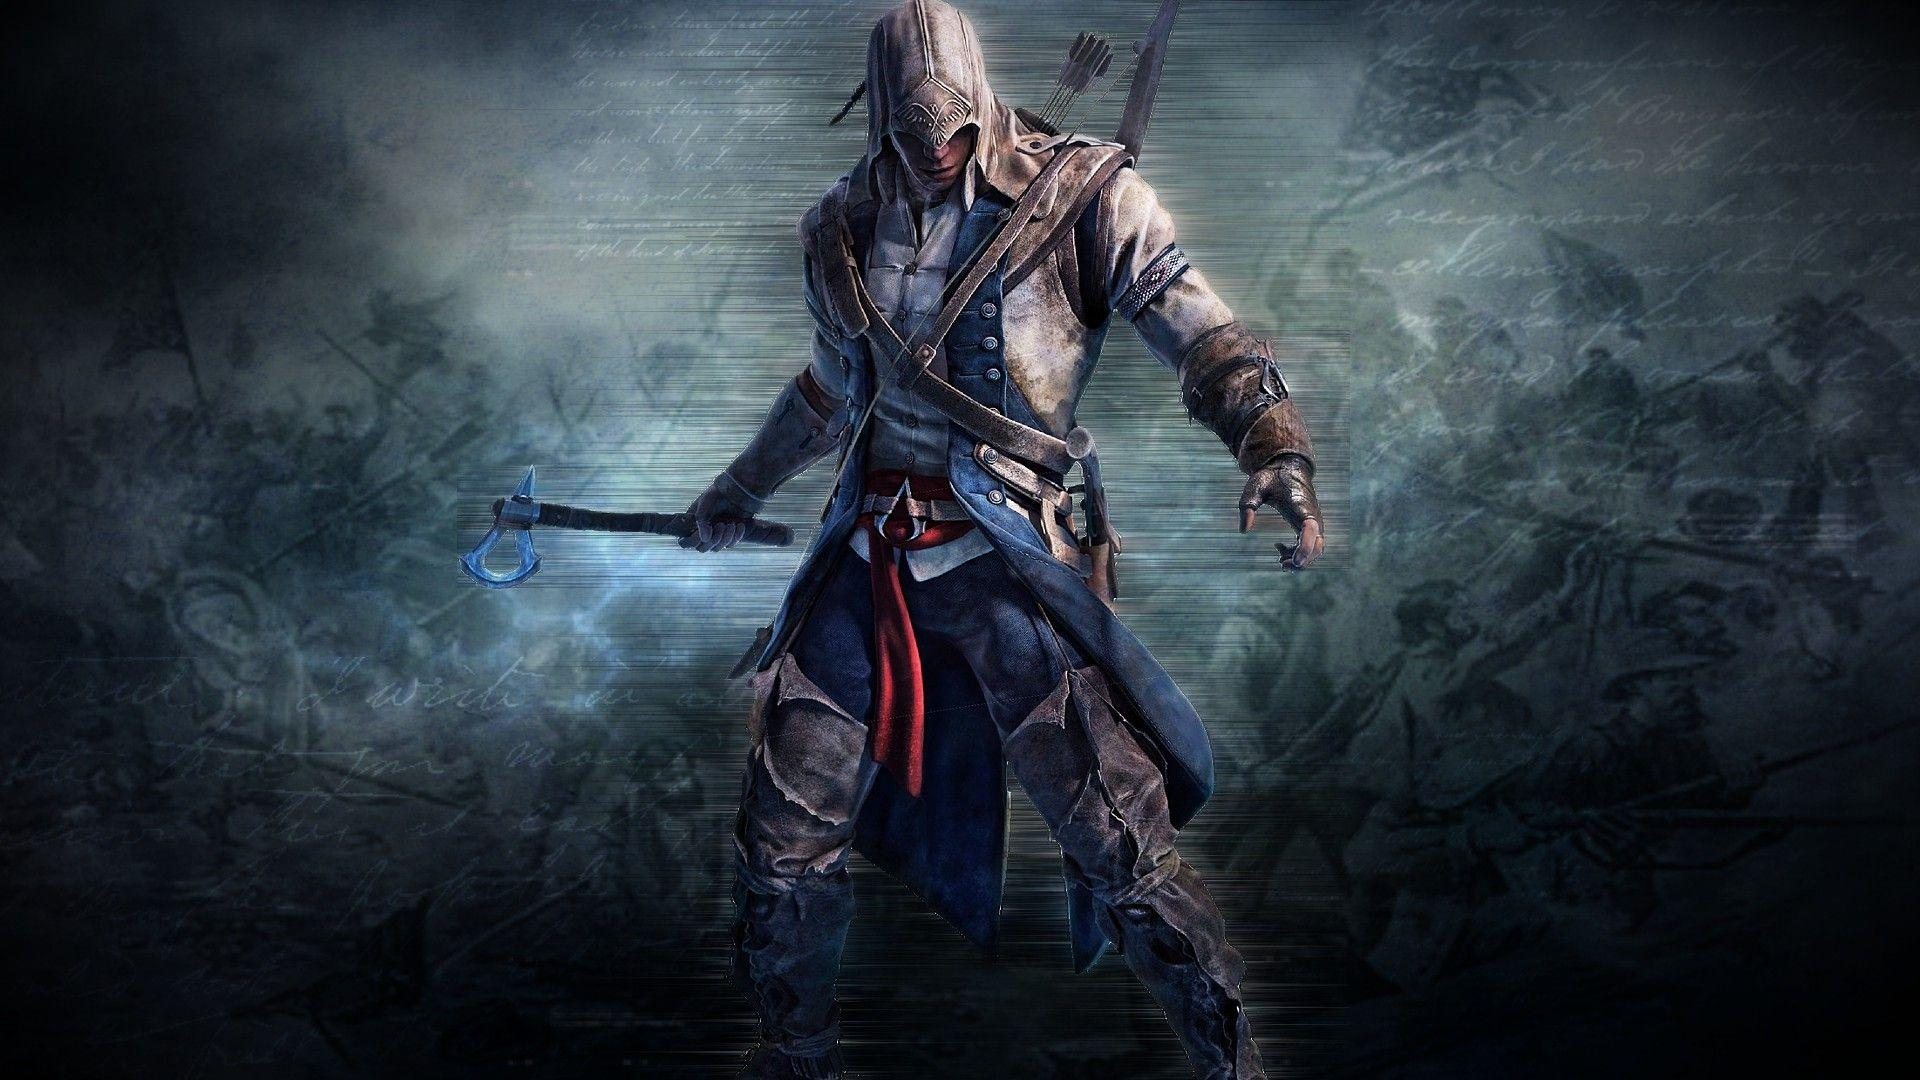 1080p Best Gaming Wallpapers For Pc Download Wallpaper